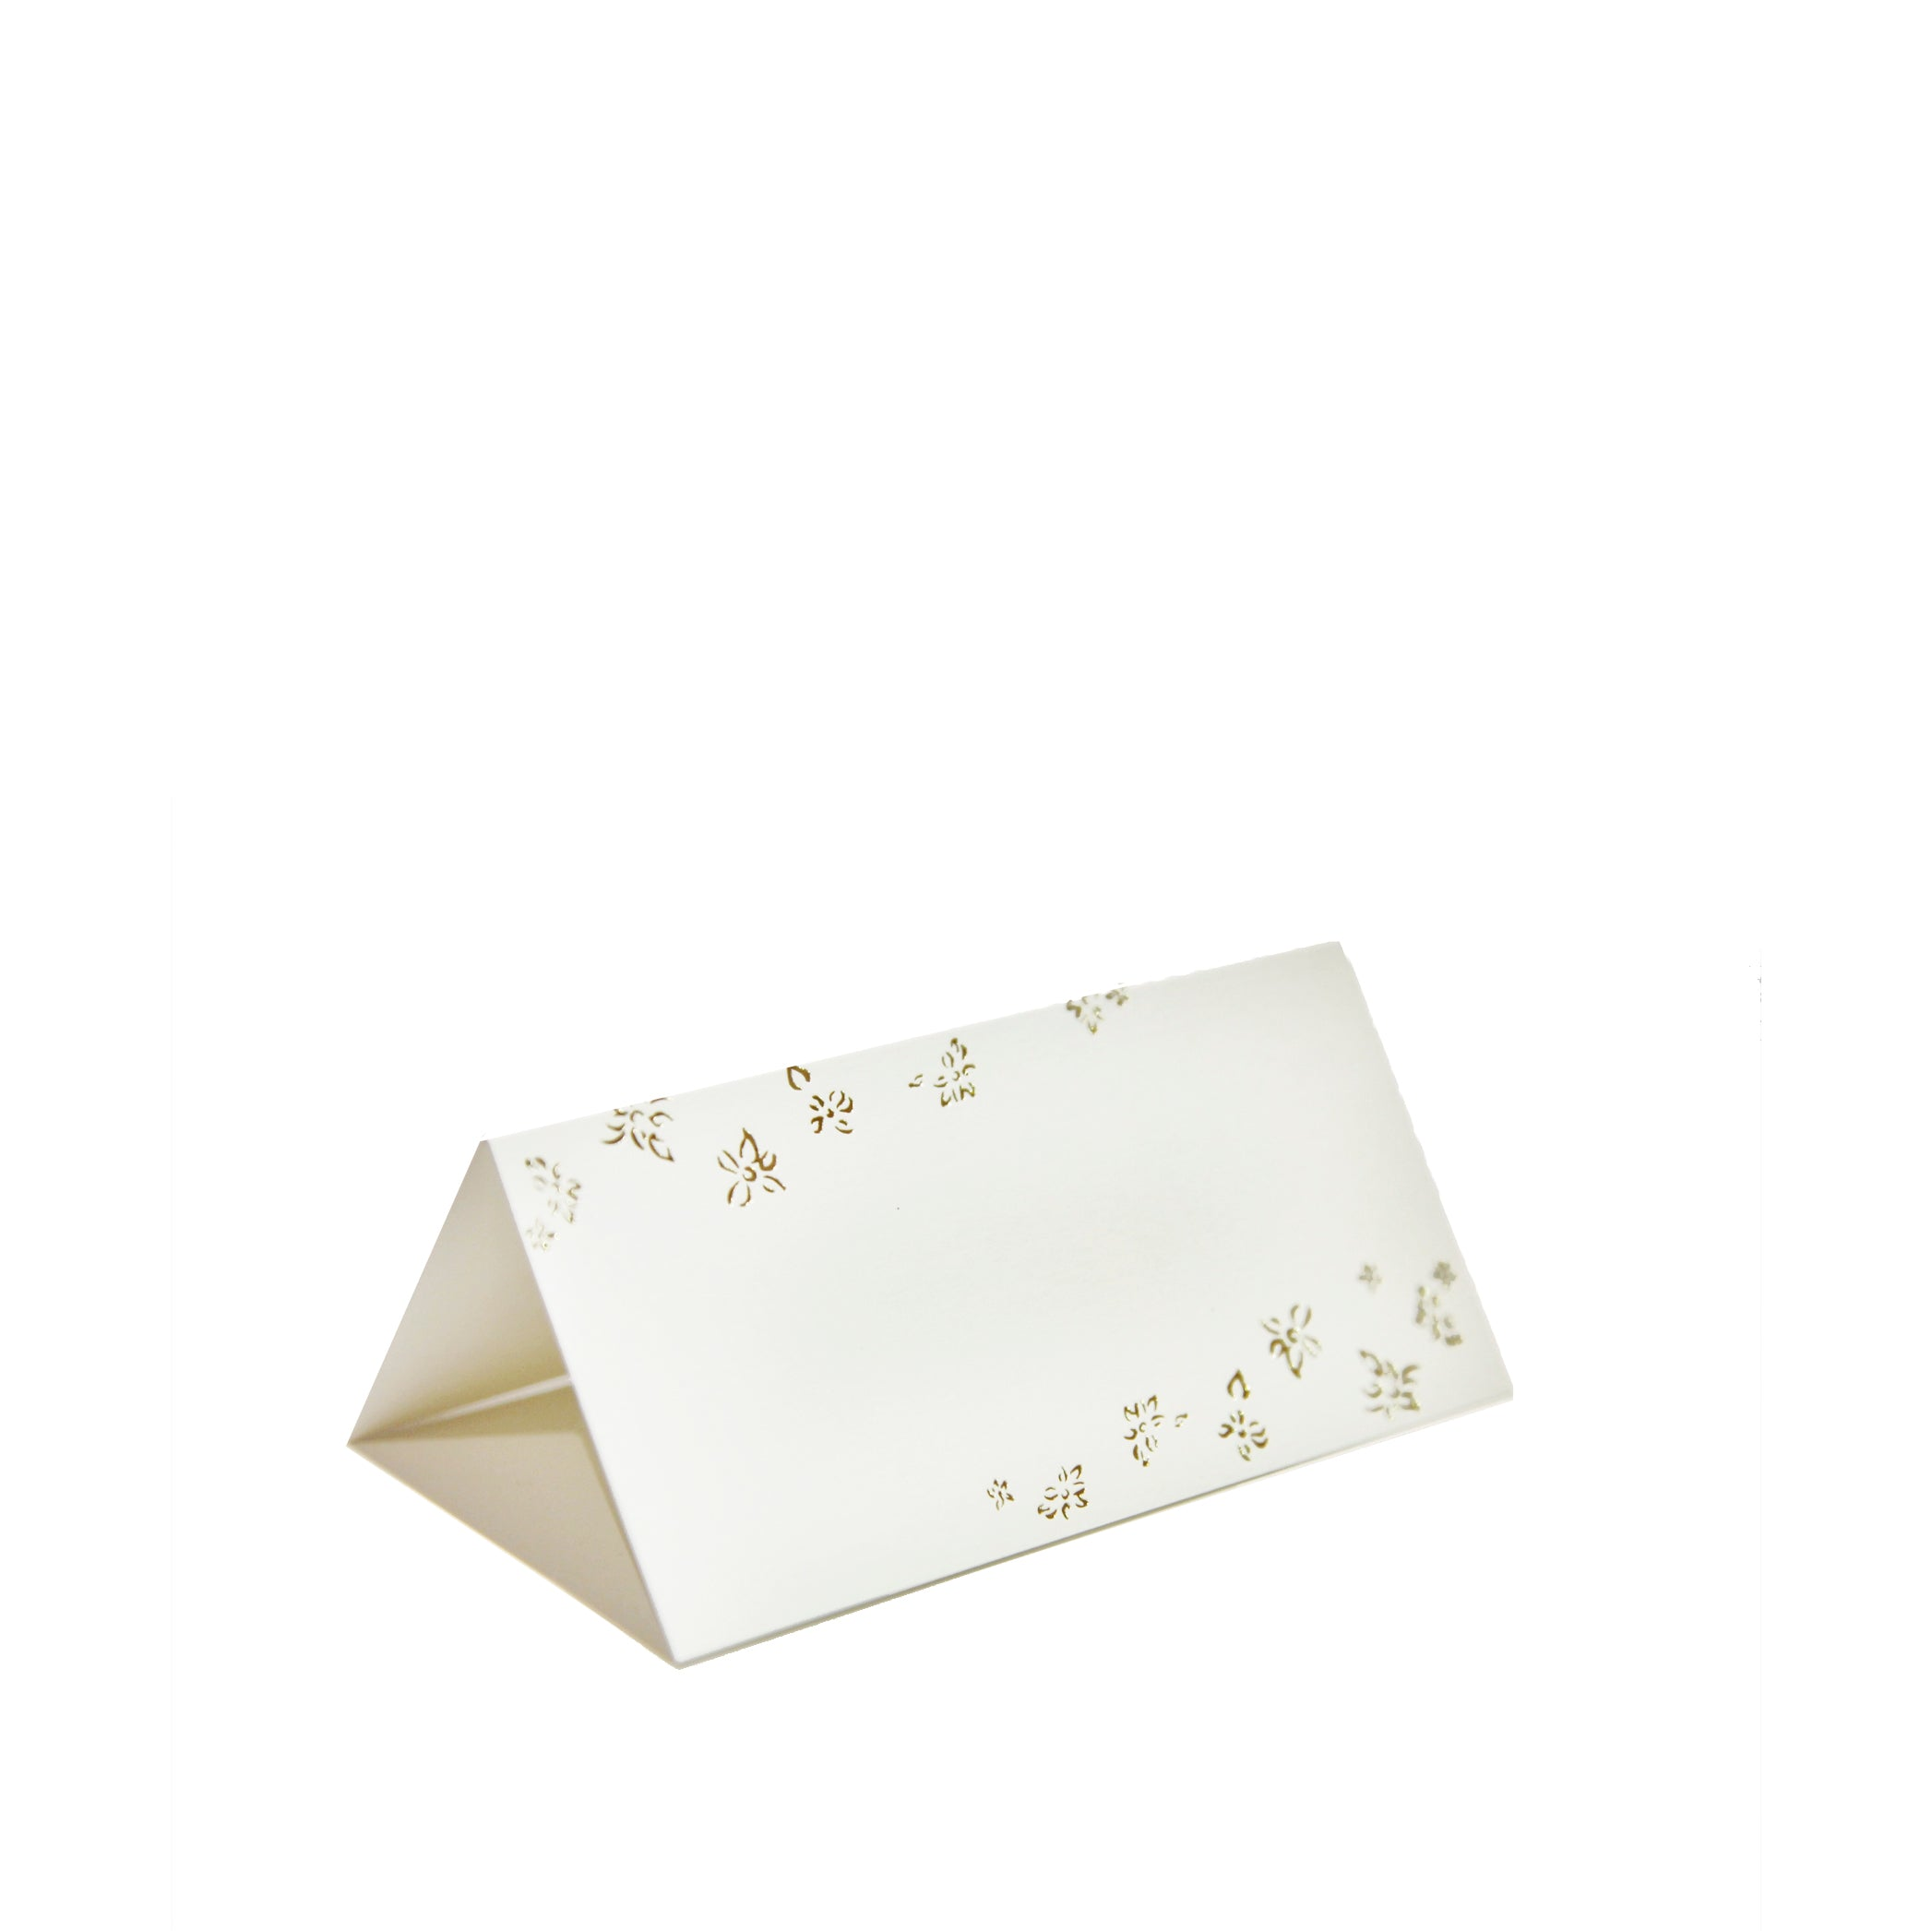 S&B Gold Foiled Falling Flower Placecards, Packet of 12